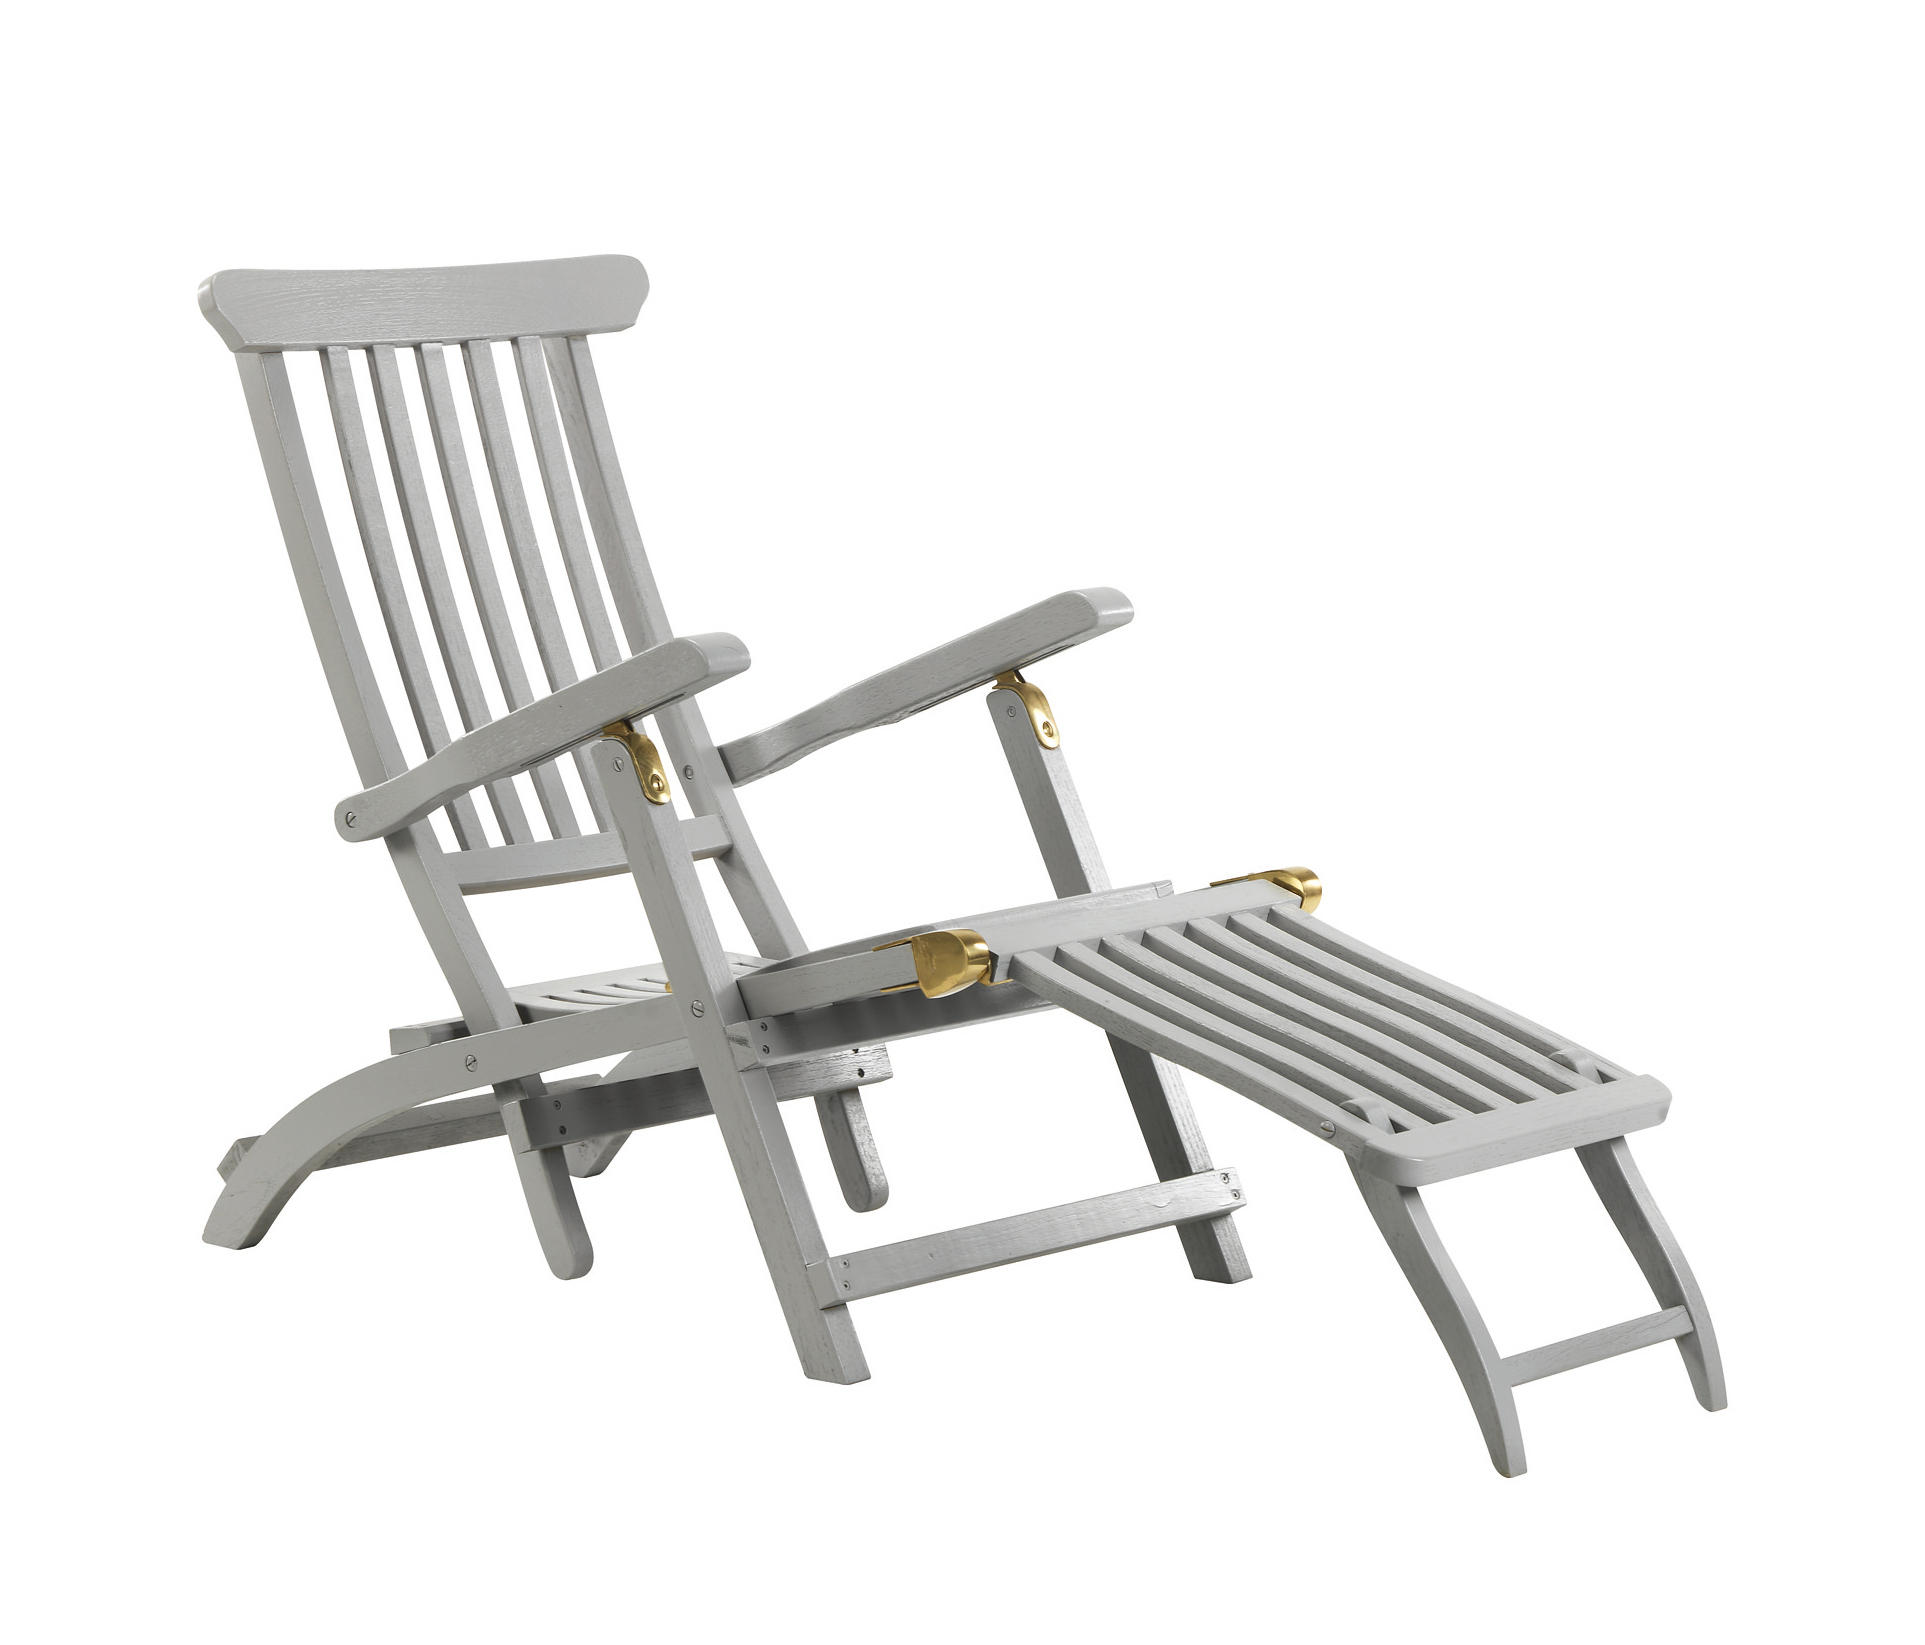 CRUISE DECK CHAIR Sun loungers from Ethimo